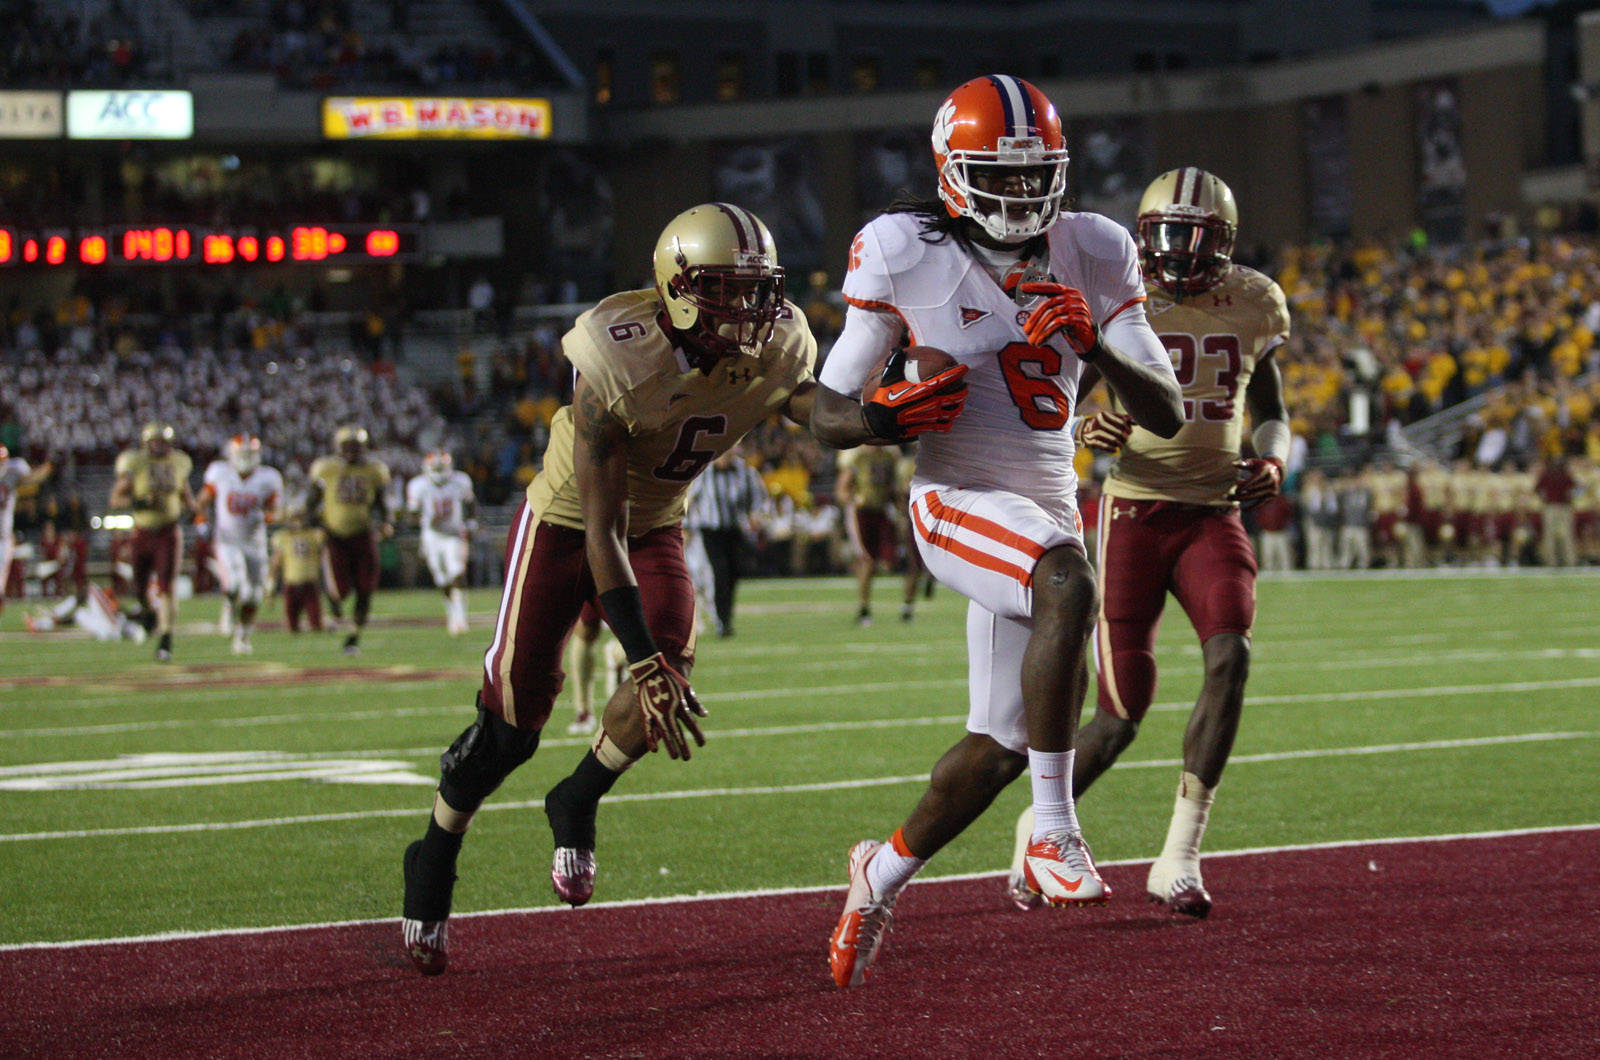 Tigers Use Team Effort to Beat Boston College